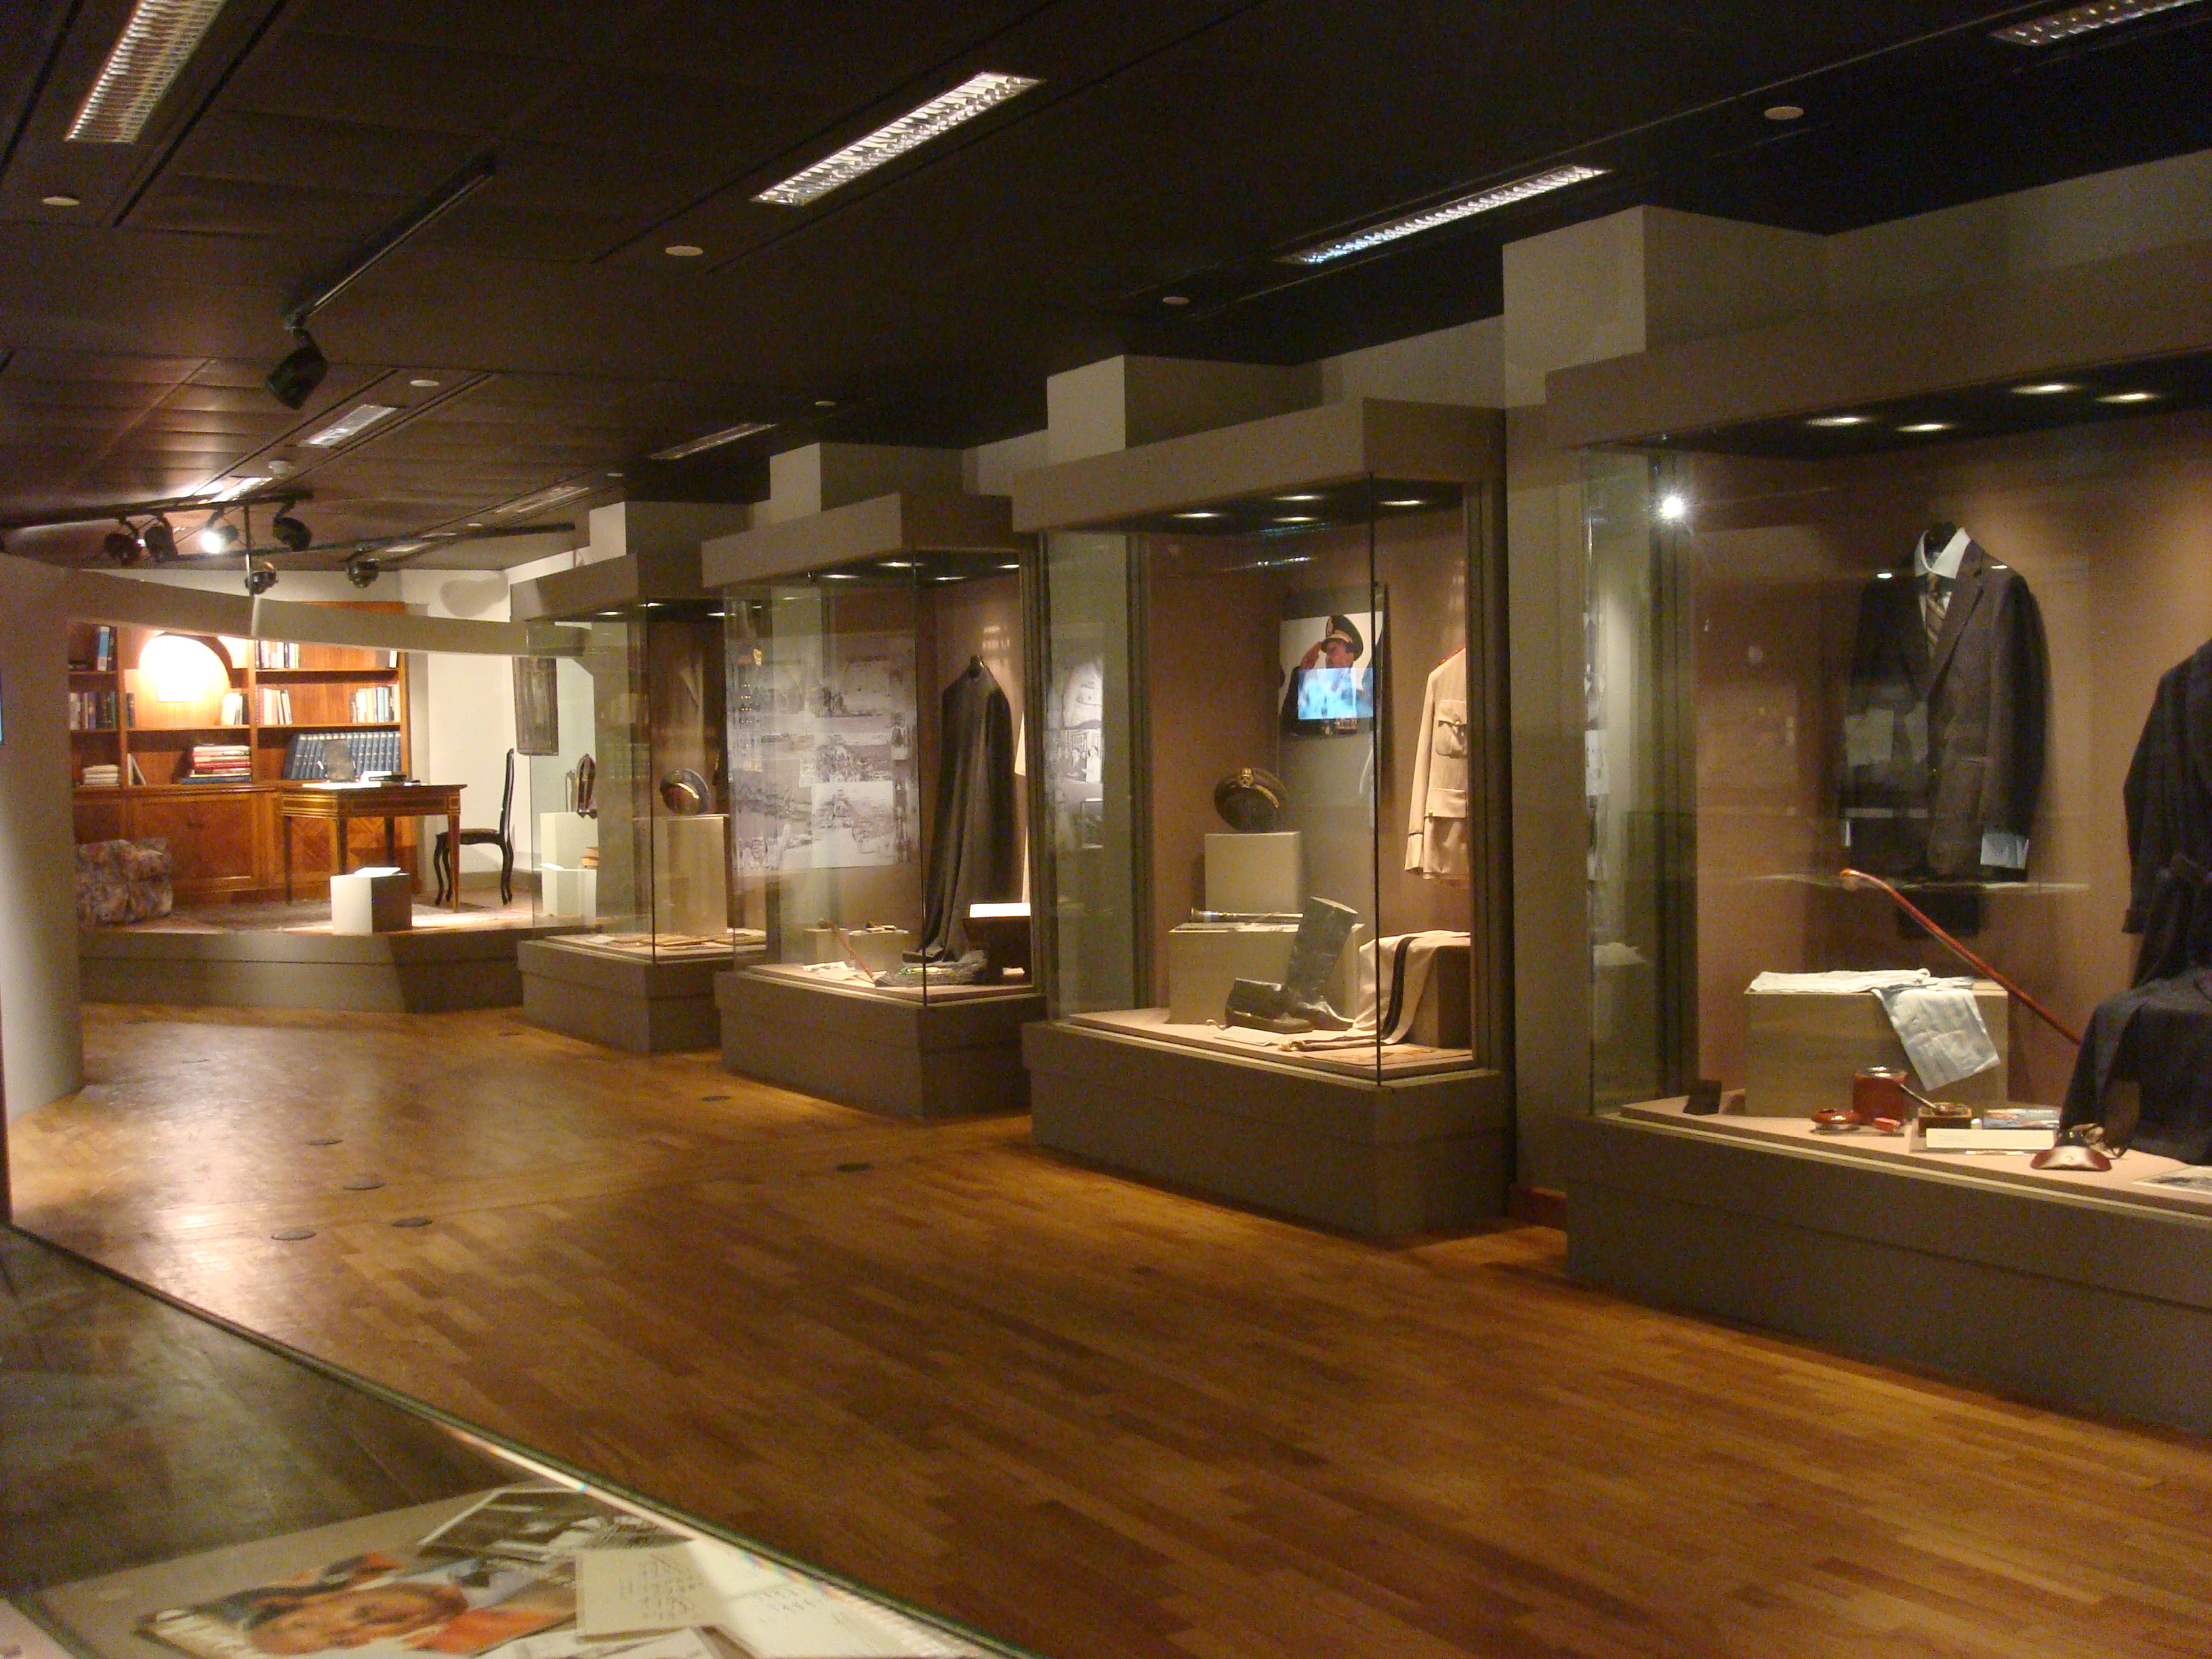 Museum Of Arts And Design Hours : File sadat museum gallery g wikimedia commons